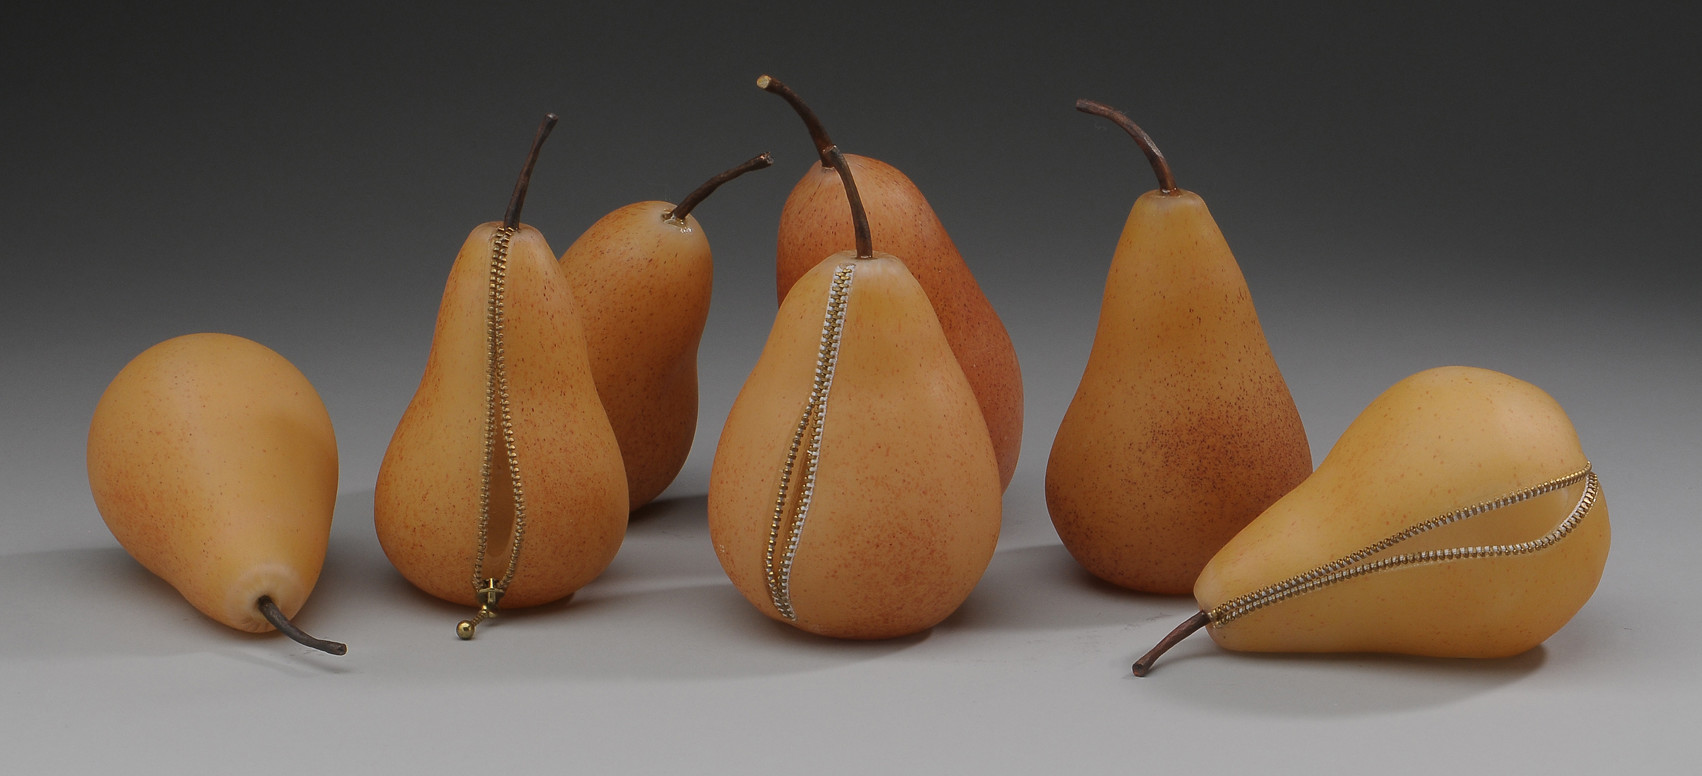 web copy 7 Pears 7 inches high each copy